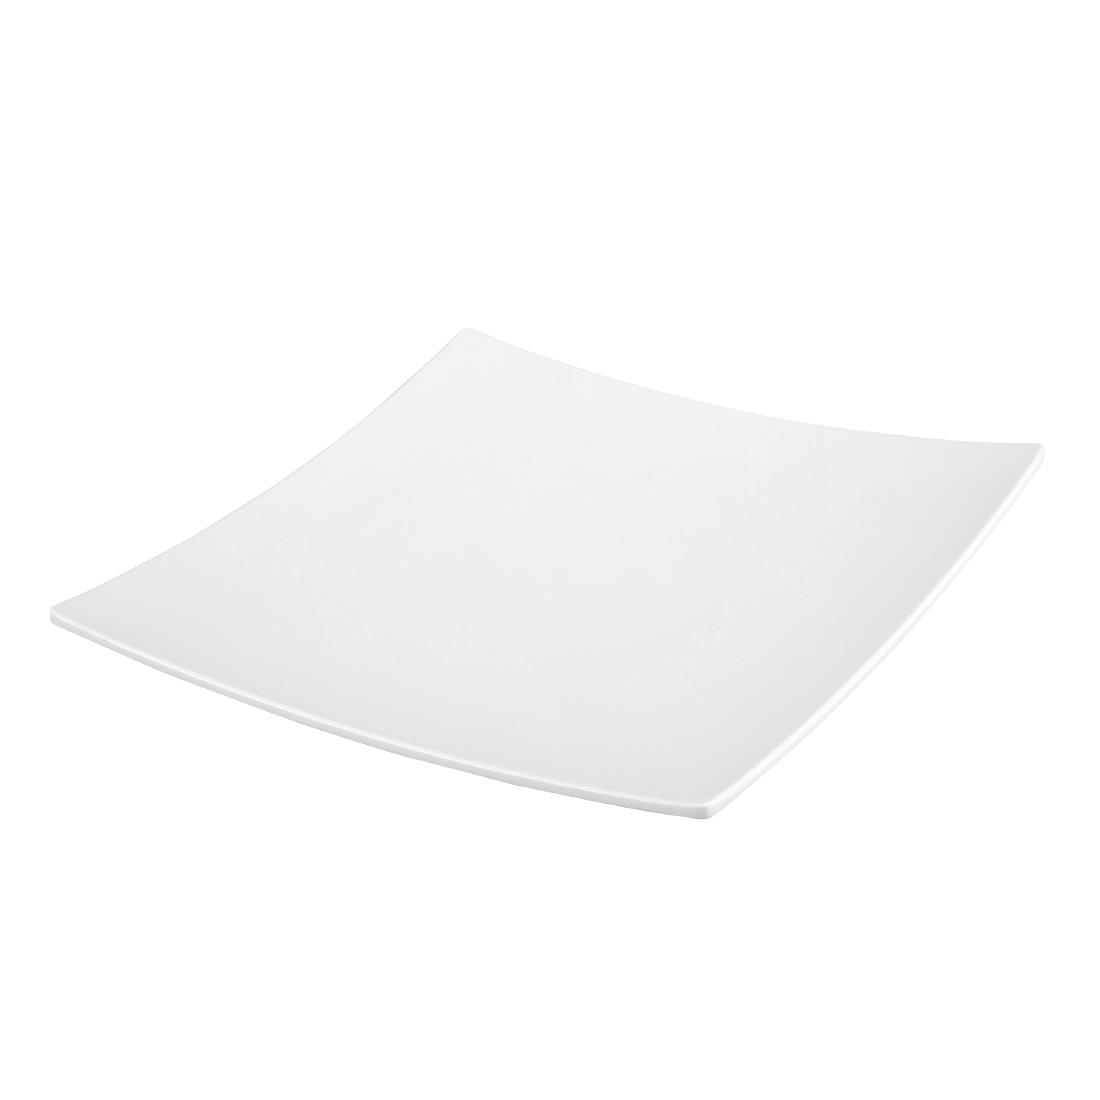 Image of Curved Square Melamine Plate White 300mm